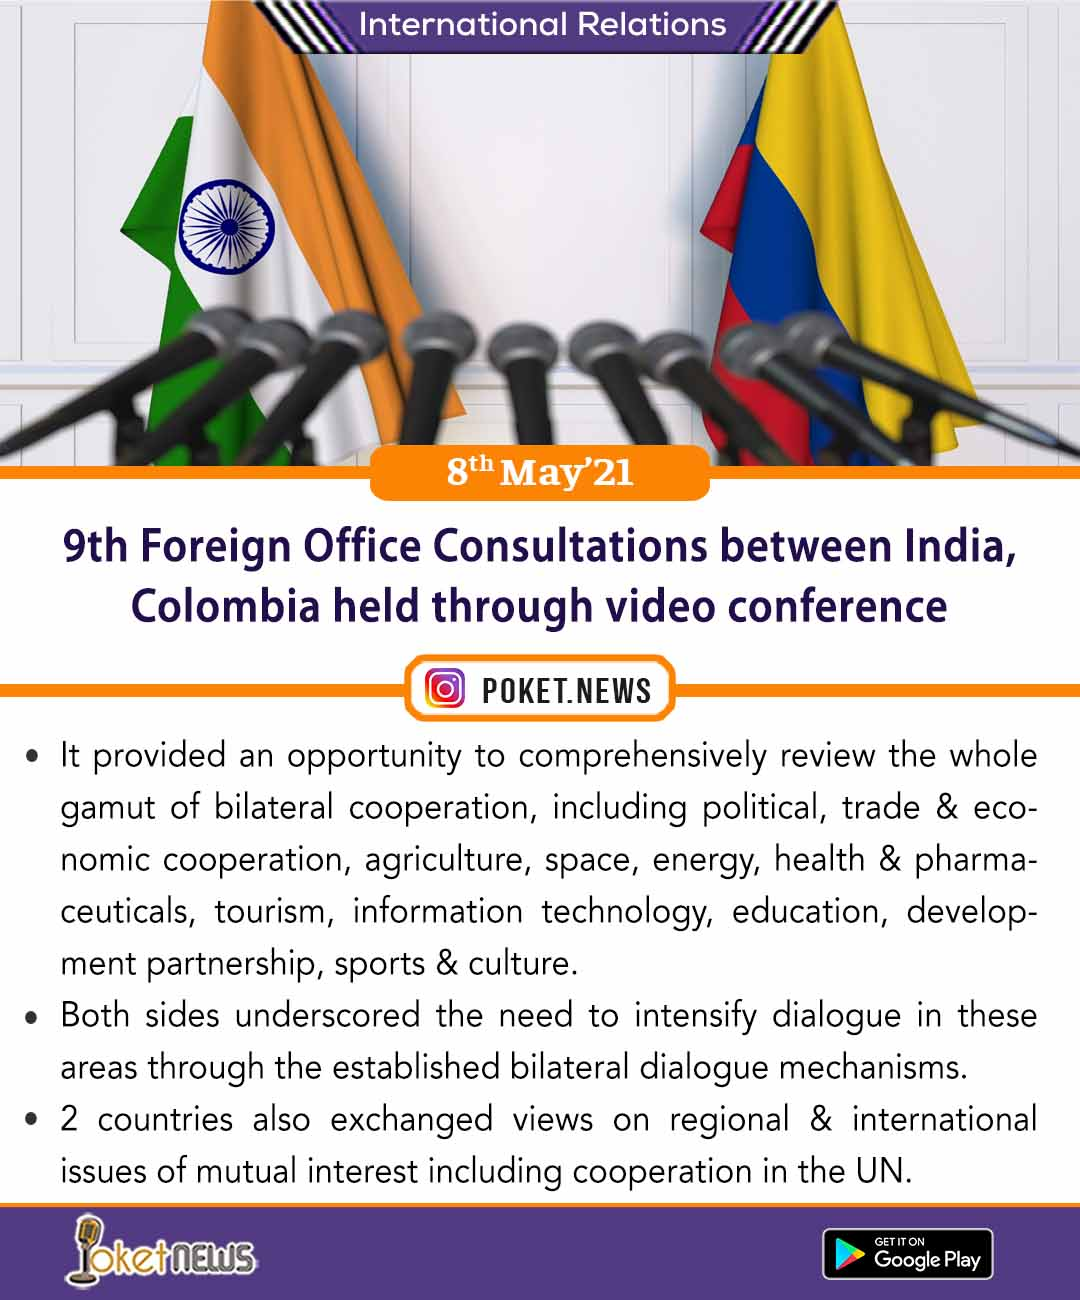 9th Foreign Office Consultations between India, Colombia held through video conference